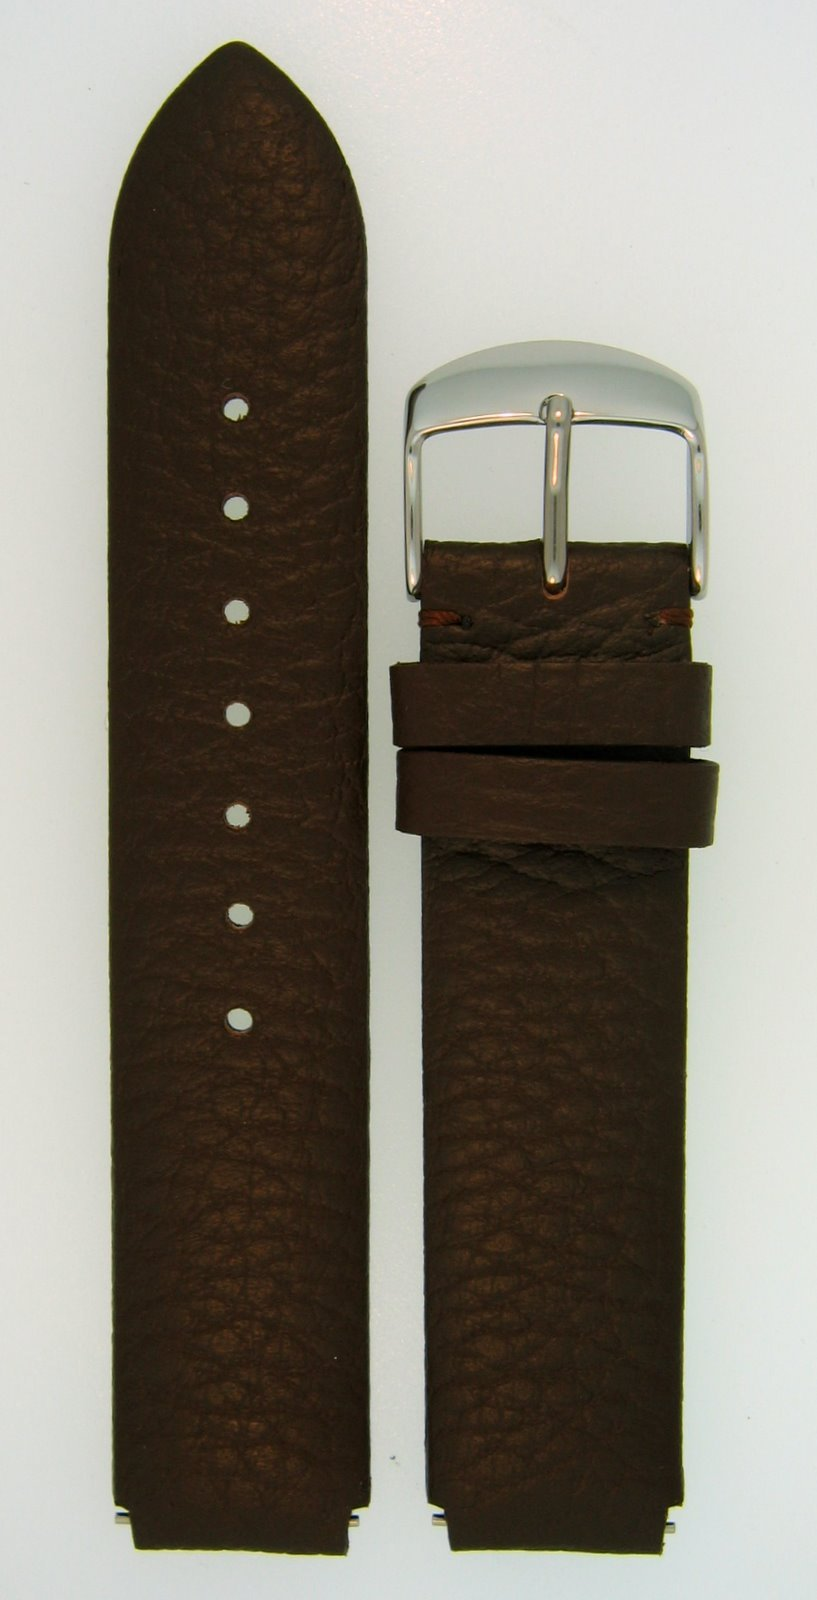 Leather Watchband Fits Philip Stein Large Size 2, 20mm Dark Chocolate Brown With Spring Bars - by JP Leatherworks by JP Leatherworks (Image #1)